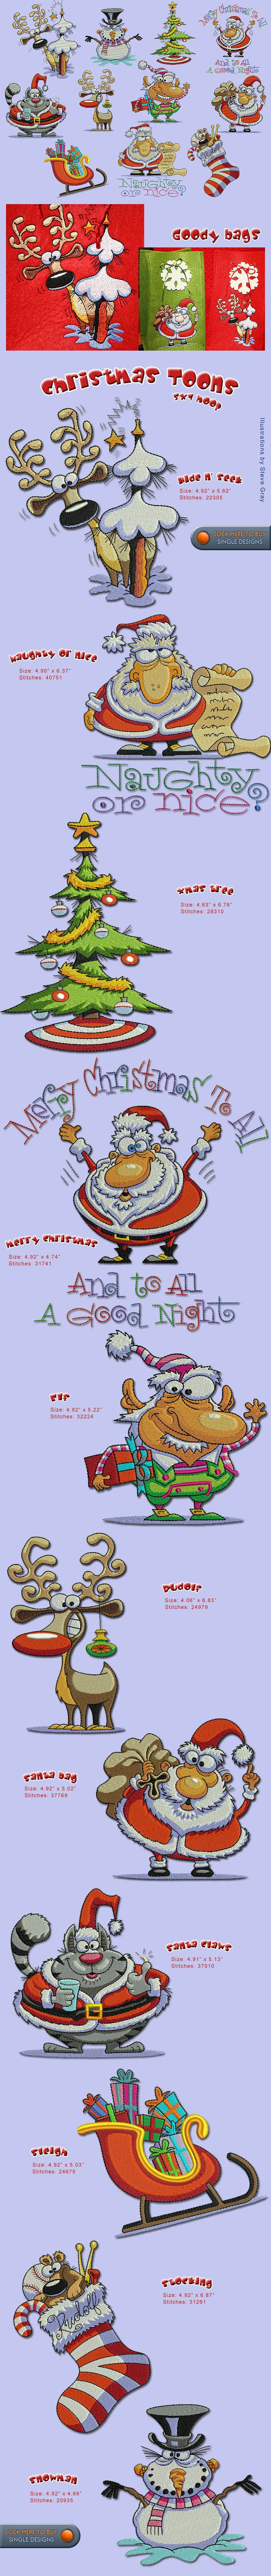 CHRISTMAS Embroidery Designs Free Embroidery Design Patterns